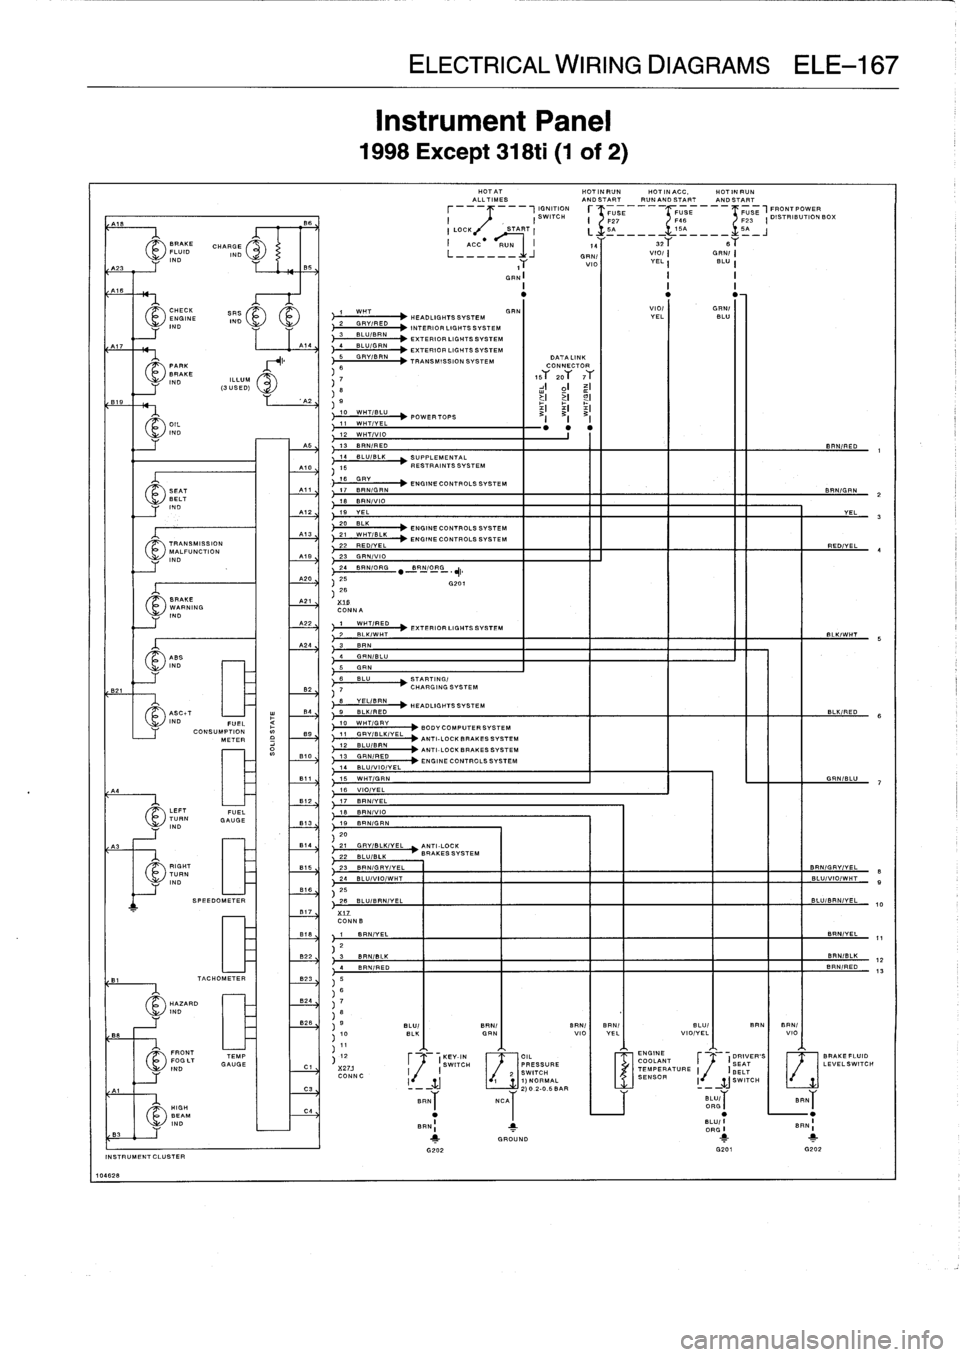 4 way trailer wiring diagram 12 volt electric winch bmw 328i 1998 e36 – dme readingrat.net